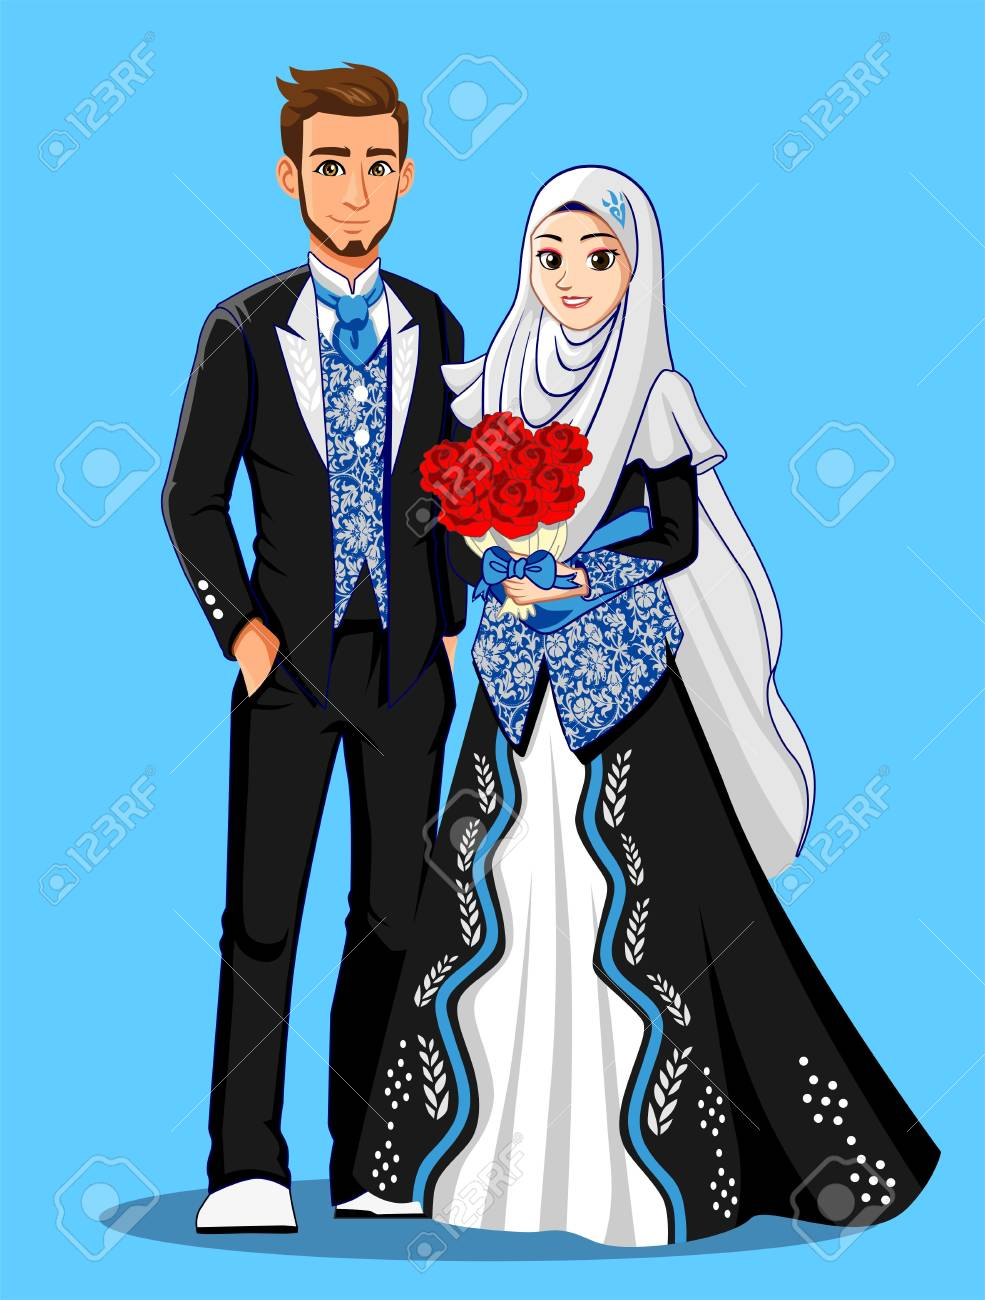 Blue Black Muslim Wedding Dress Stock Photo, Picture And Royalty ...